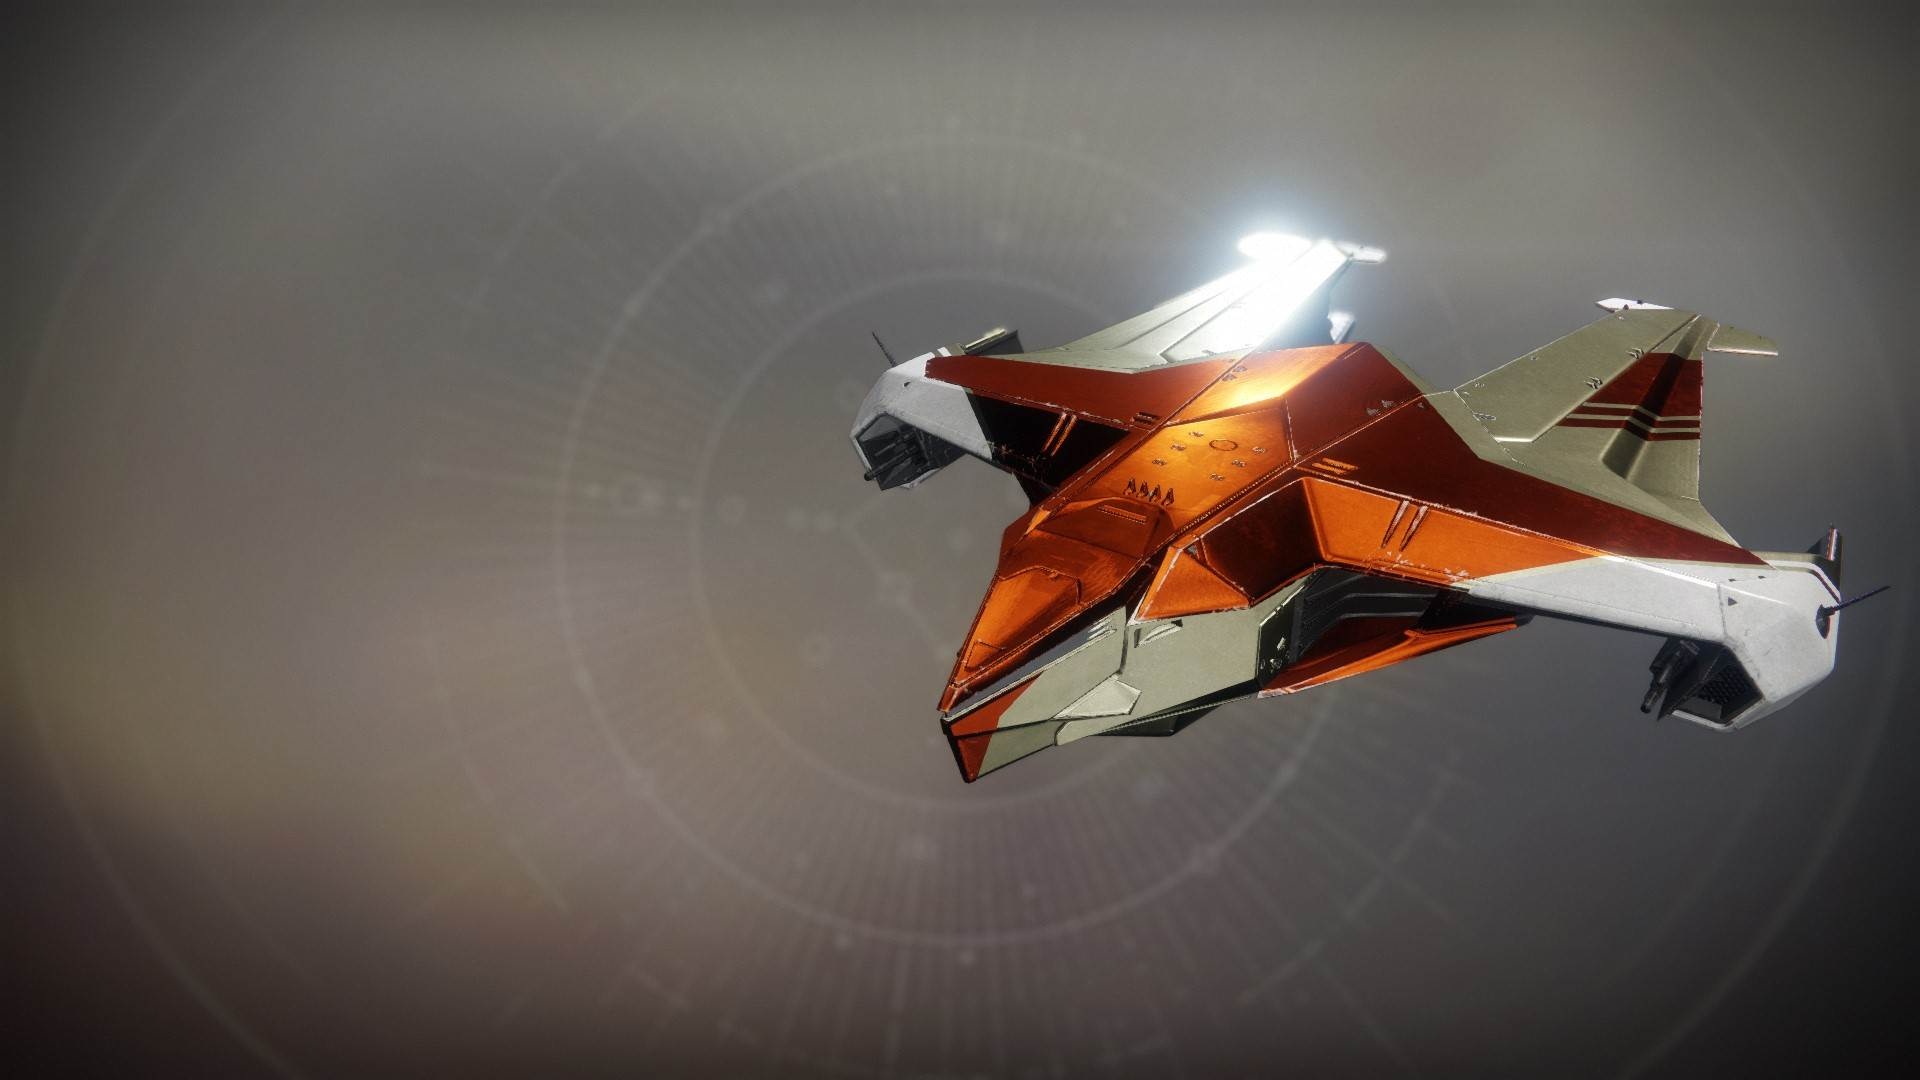 An in-game render of the Arrowhawk.